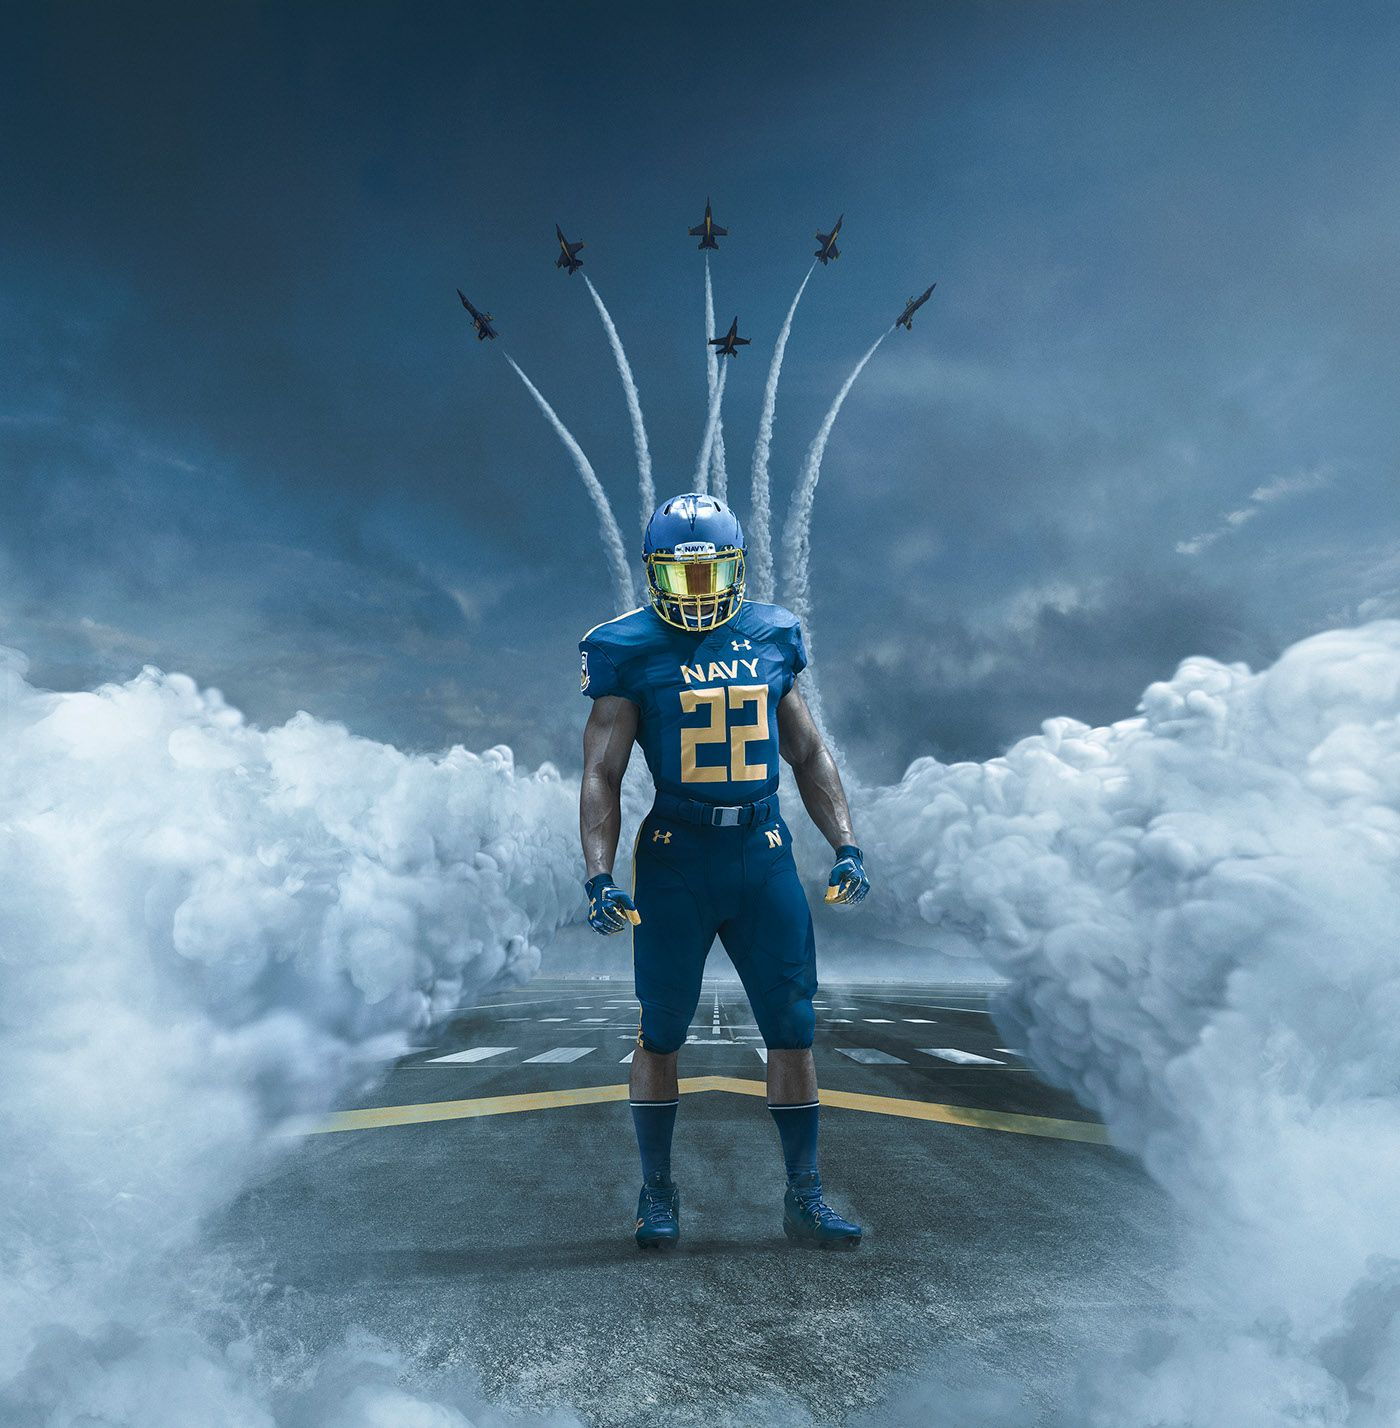 Construction Of An Epic Football Picture Navy Football Army Vs